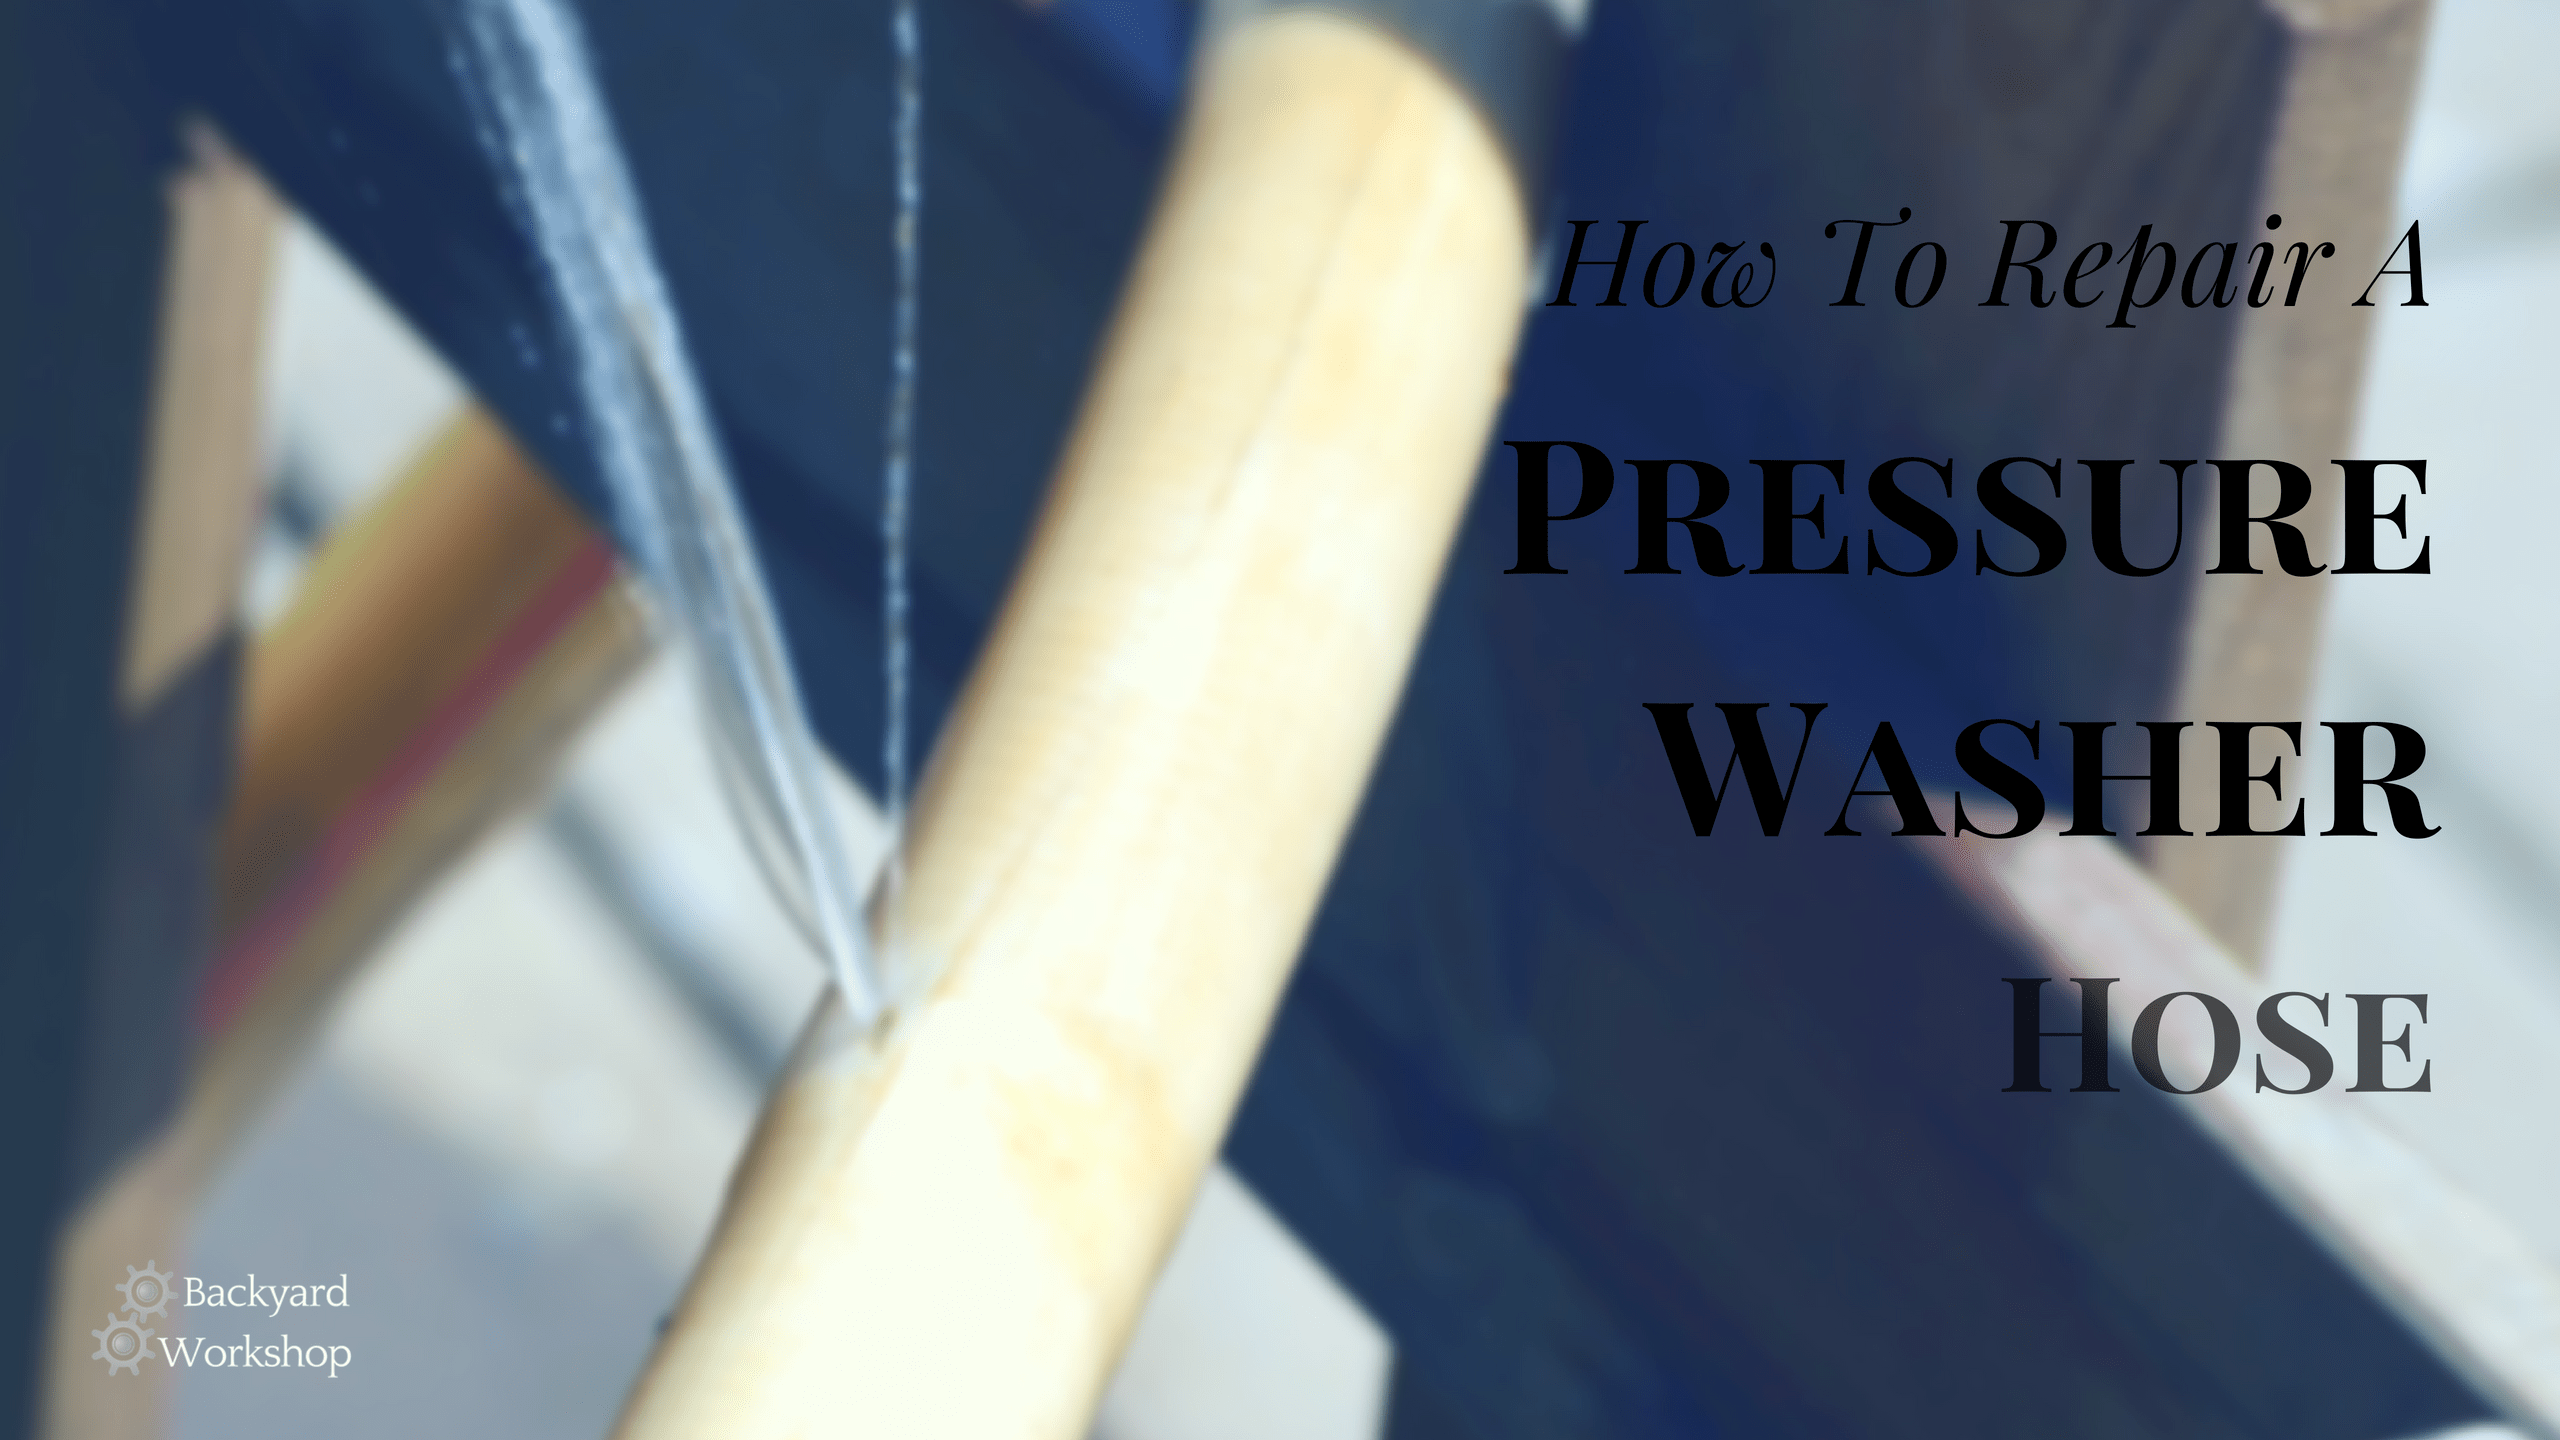 How To Repair A Pressure Washer Hose